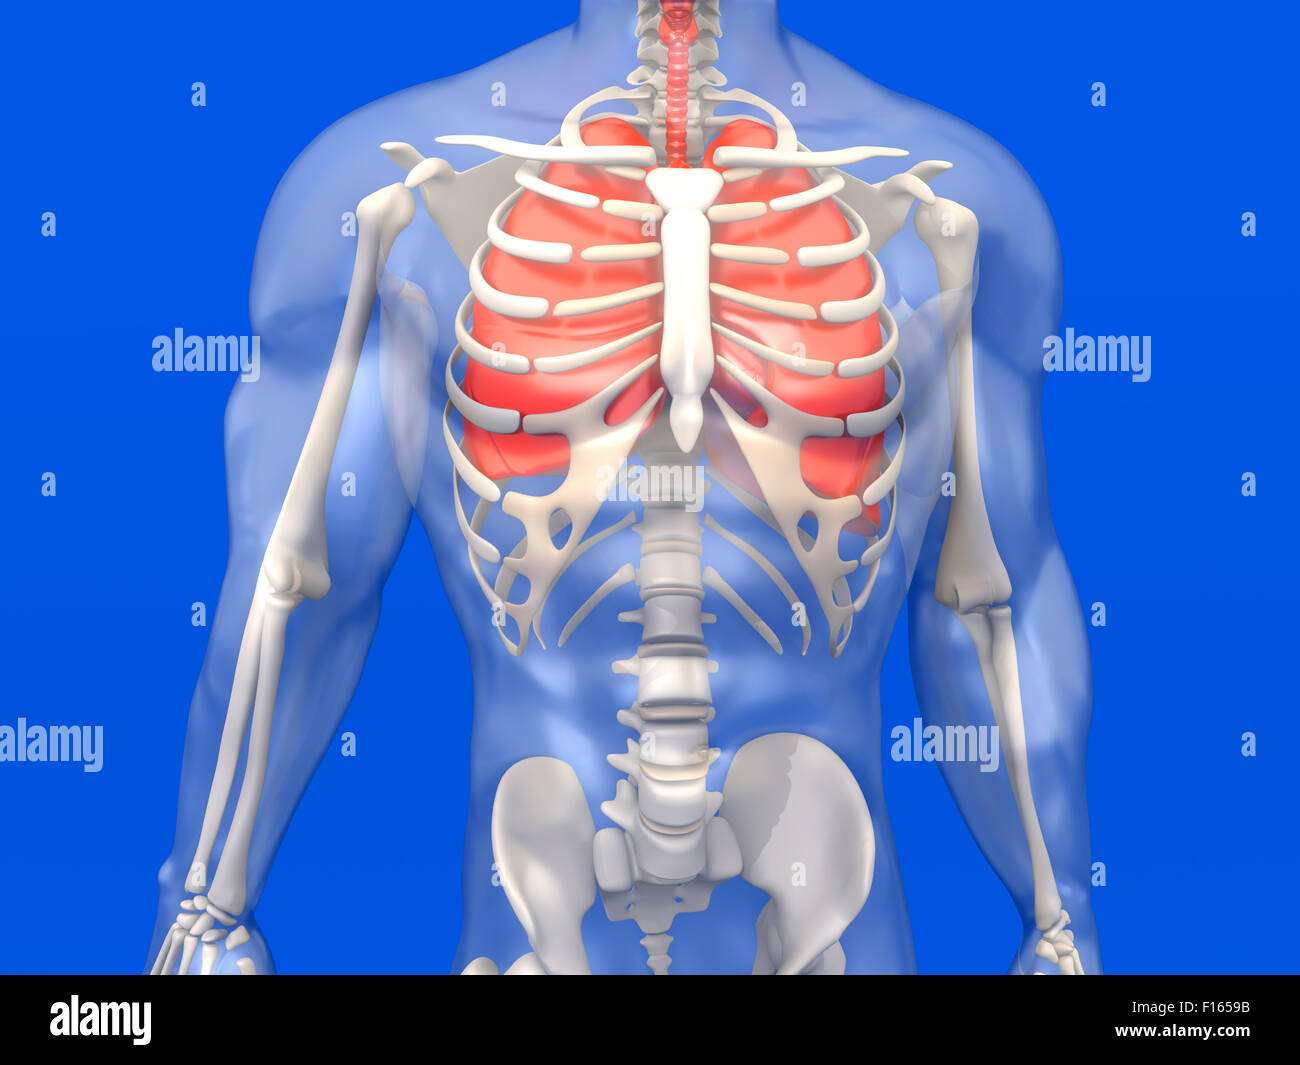 In A Human Body Diagram Lungs Circuit Diagram Symbols